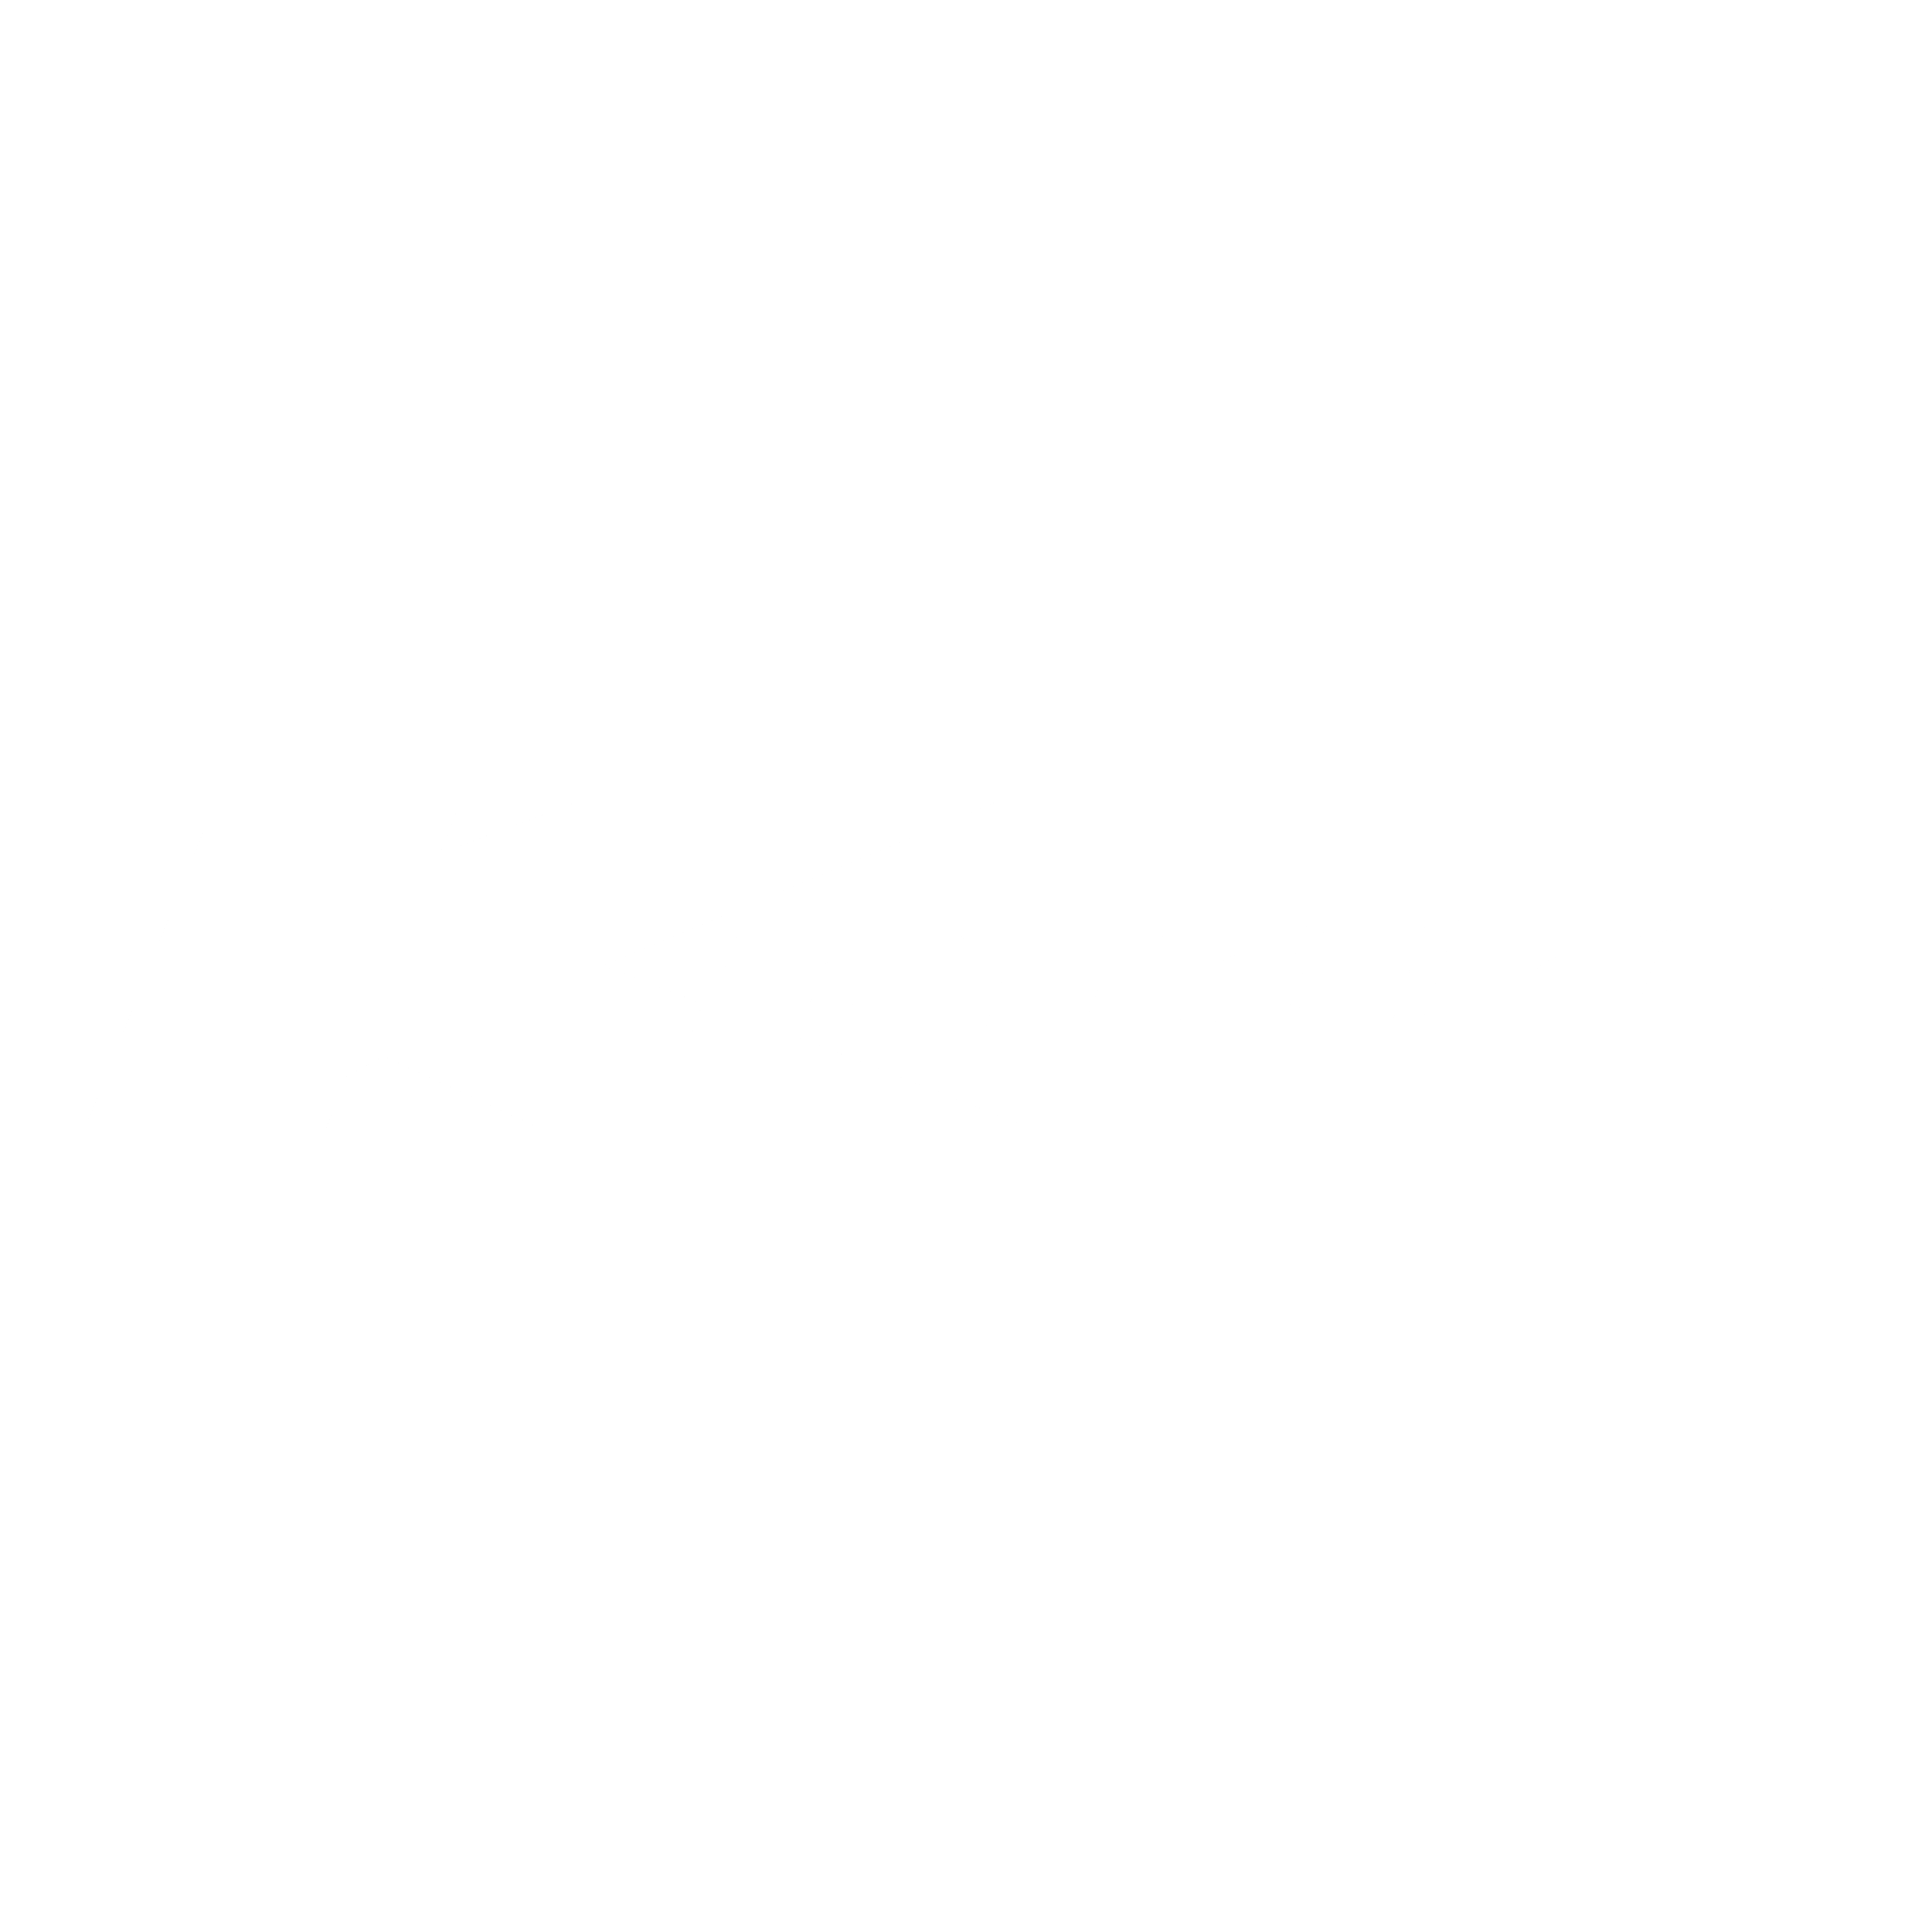 Kmart Logo Black And White